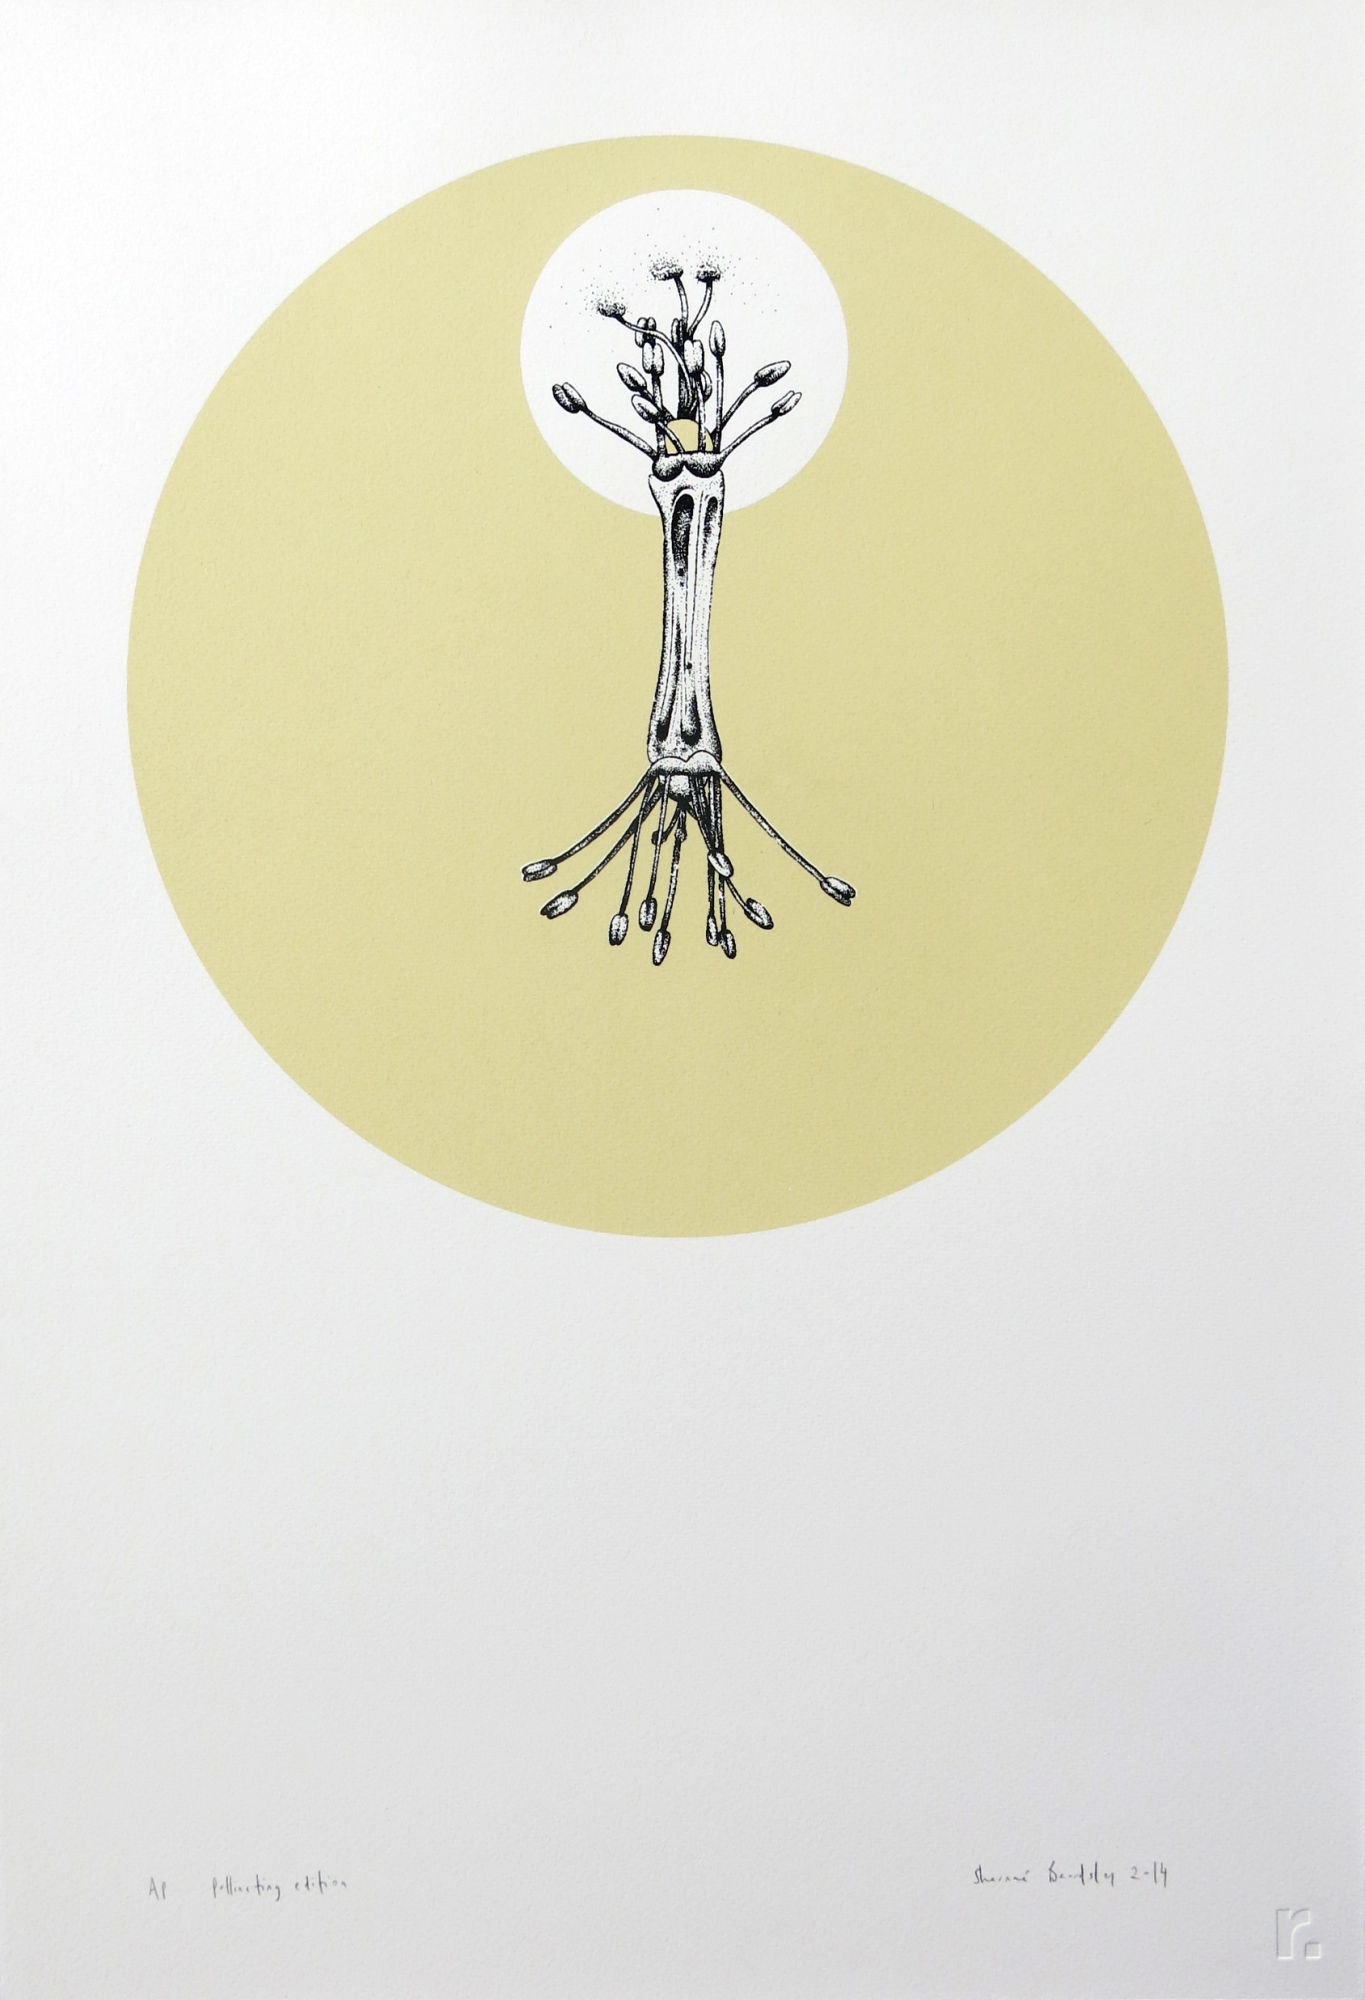 'Pollination Edition' (2014), edition of 12 for rubble.inc Summer 2014/15 Collection, 390x560mm